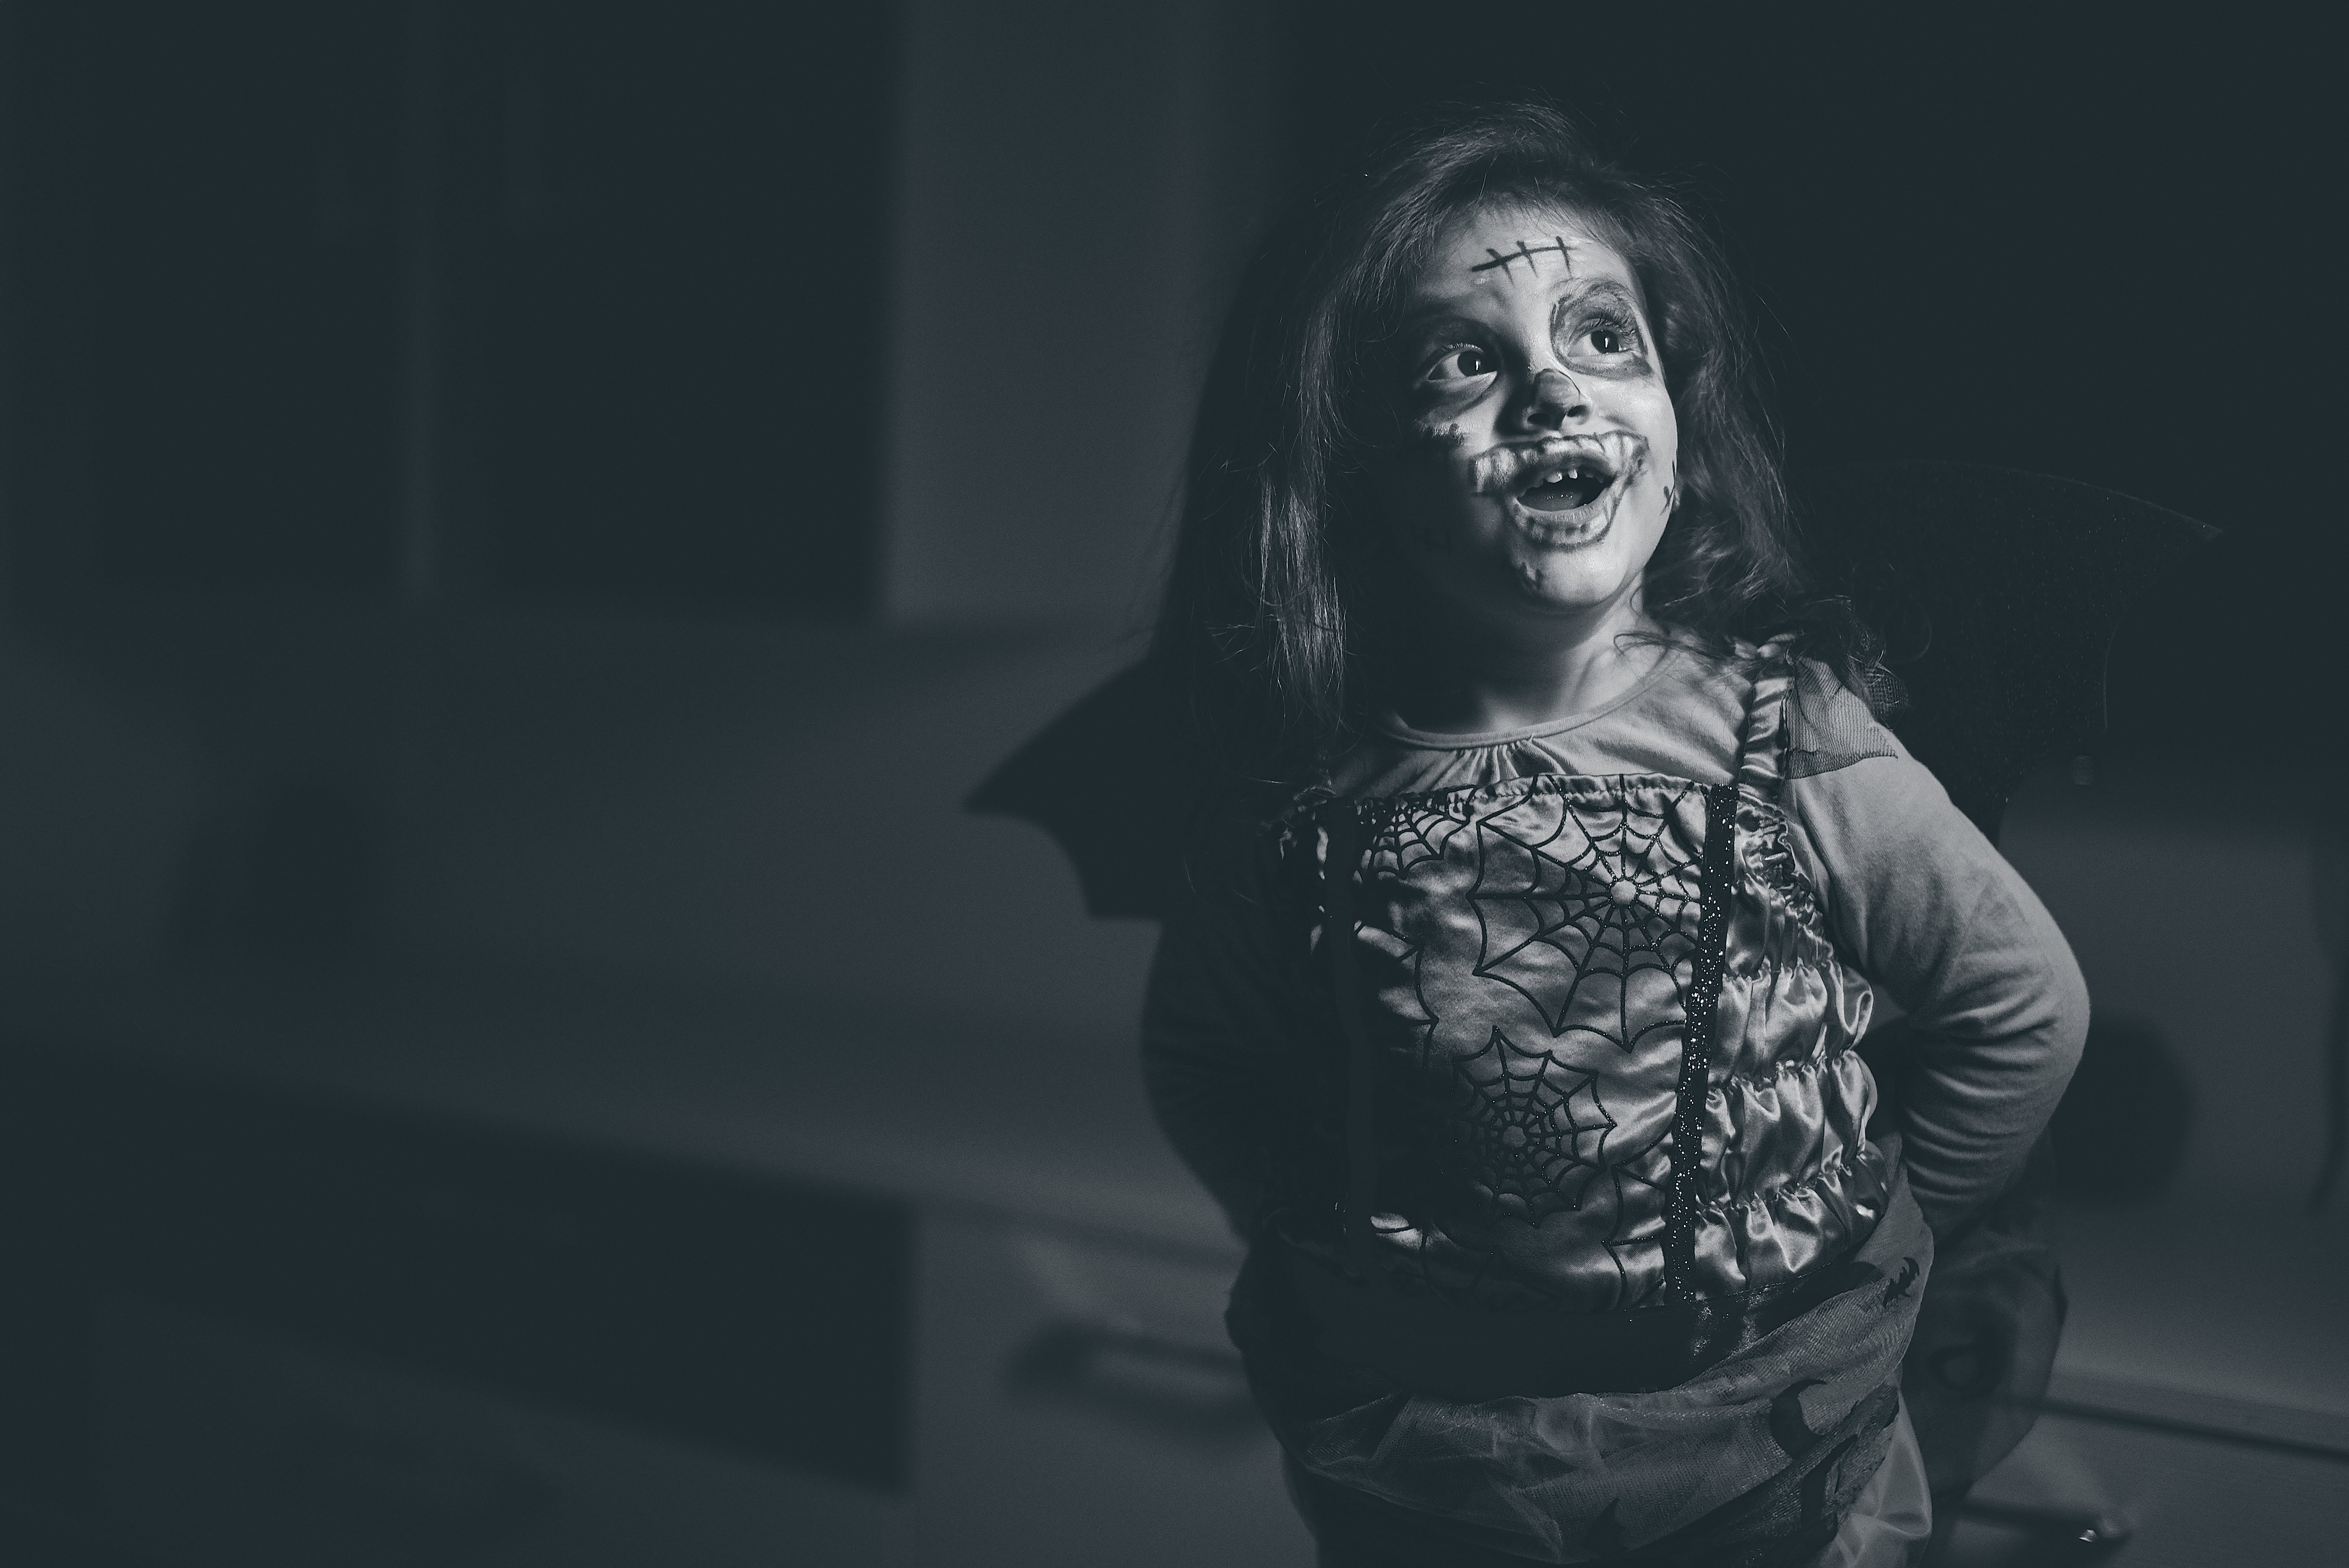 Grayscale Photo of Smiling Girl In Halloween Costume